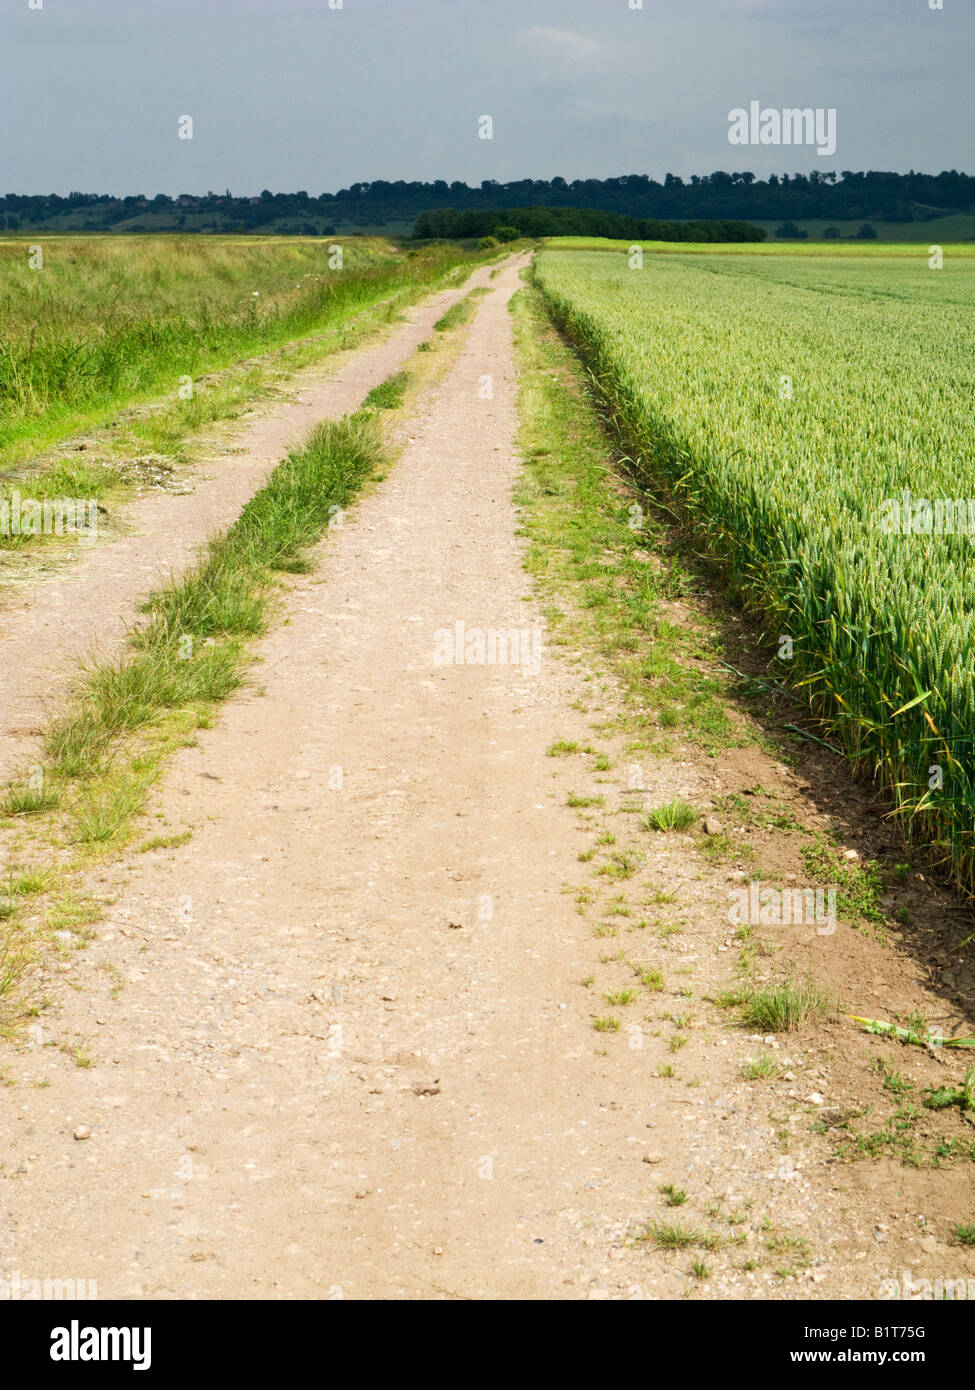 Pathway path through rural crop fields in the flat open landscape of East Yorkshire, England, UK - Stock Image